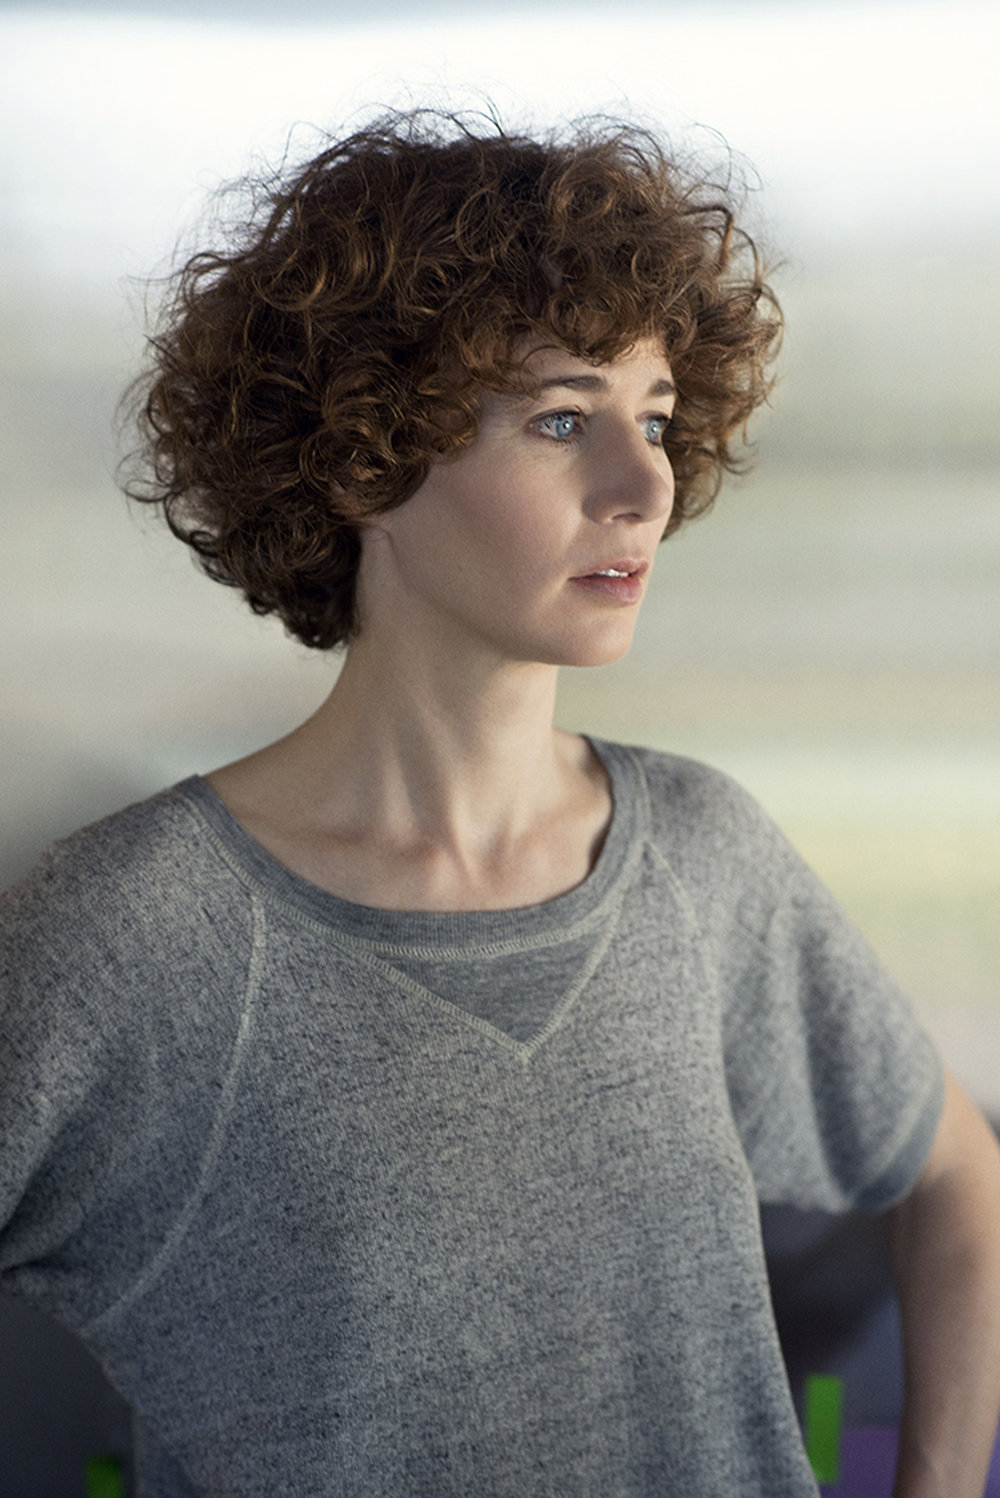 Miranda July 2-2165kb credit Todd Cole.jpg